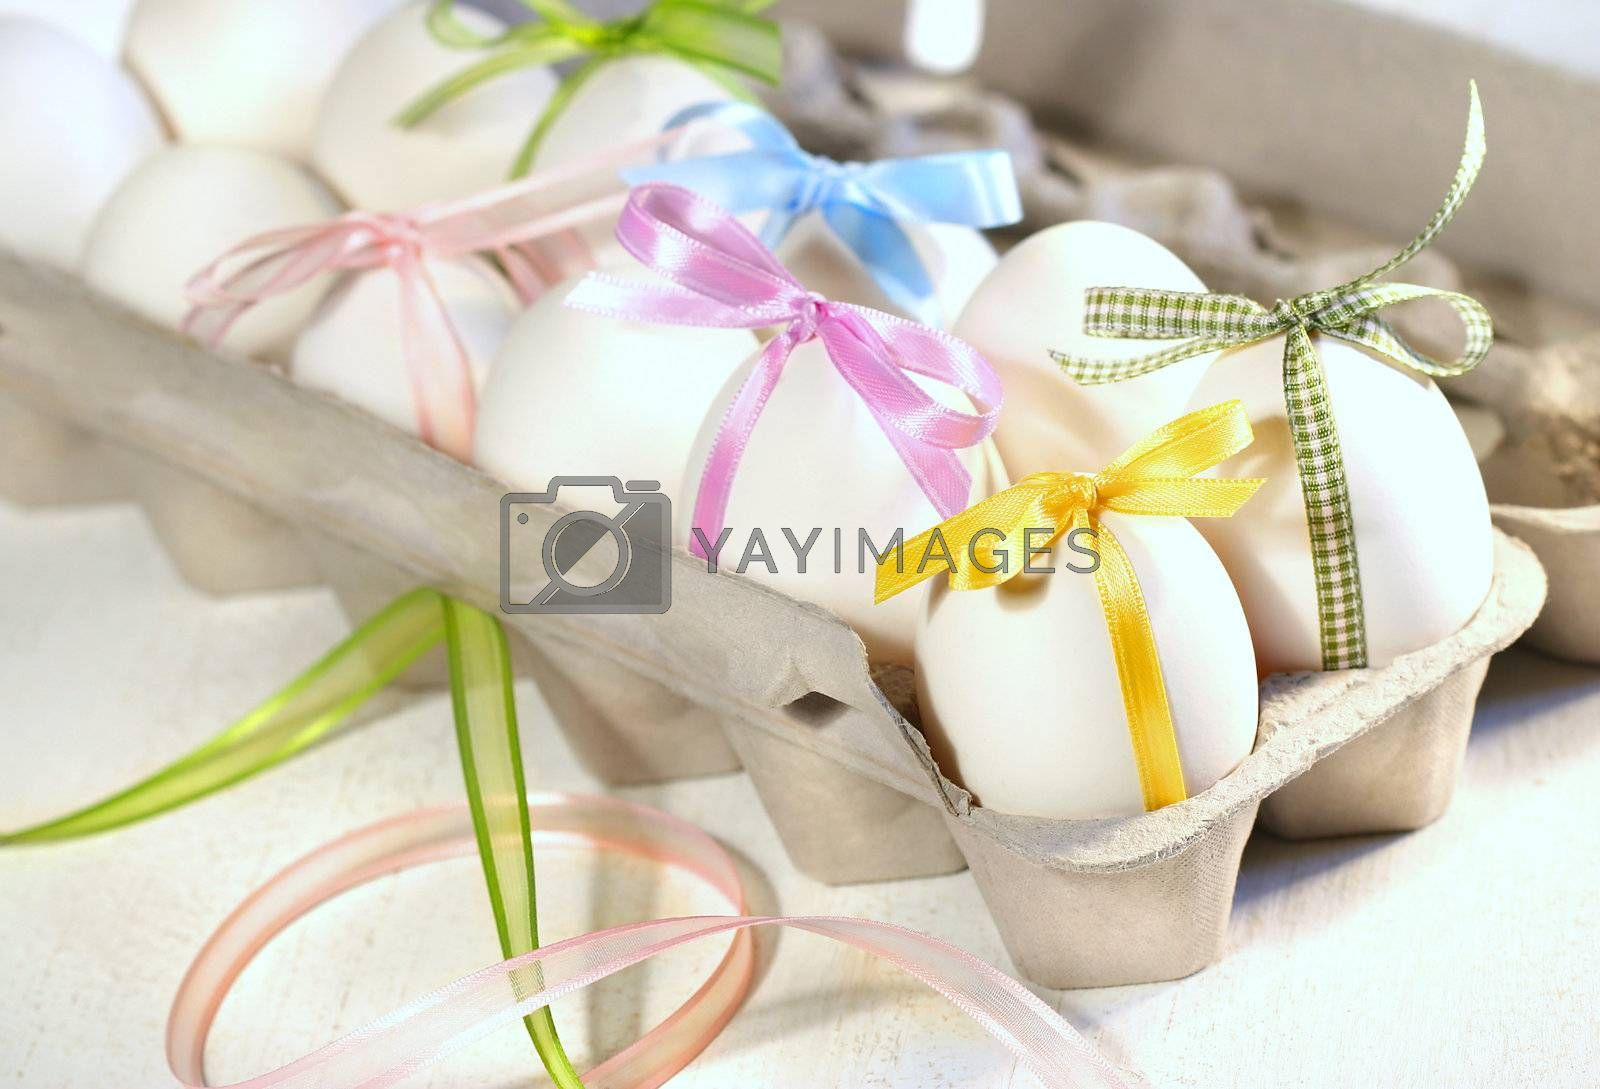 Eggs with ribbons ready for Easter festivities